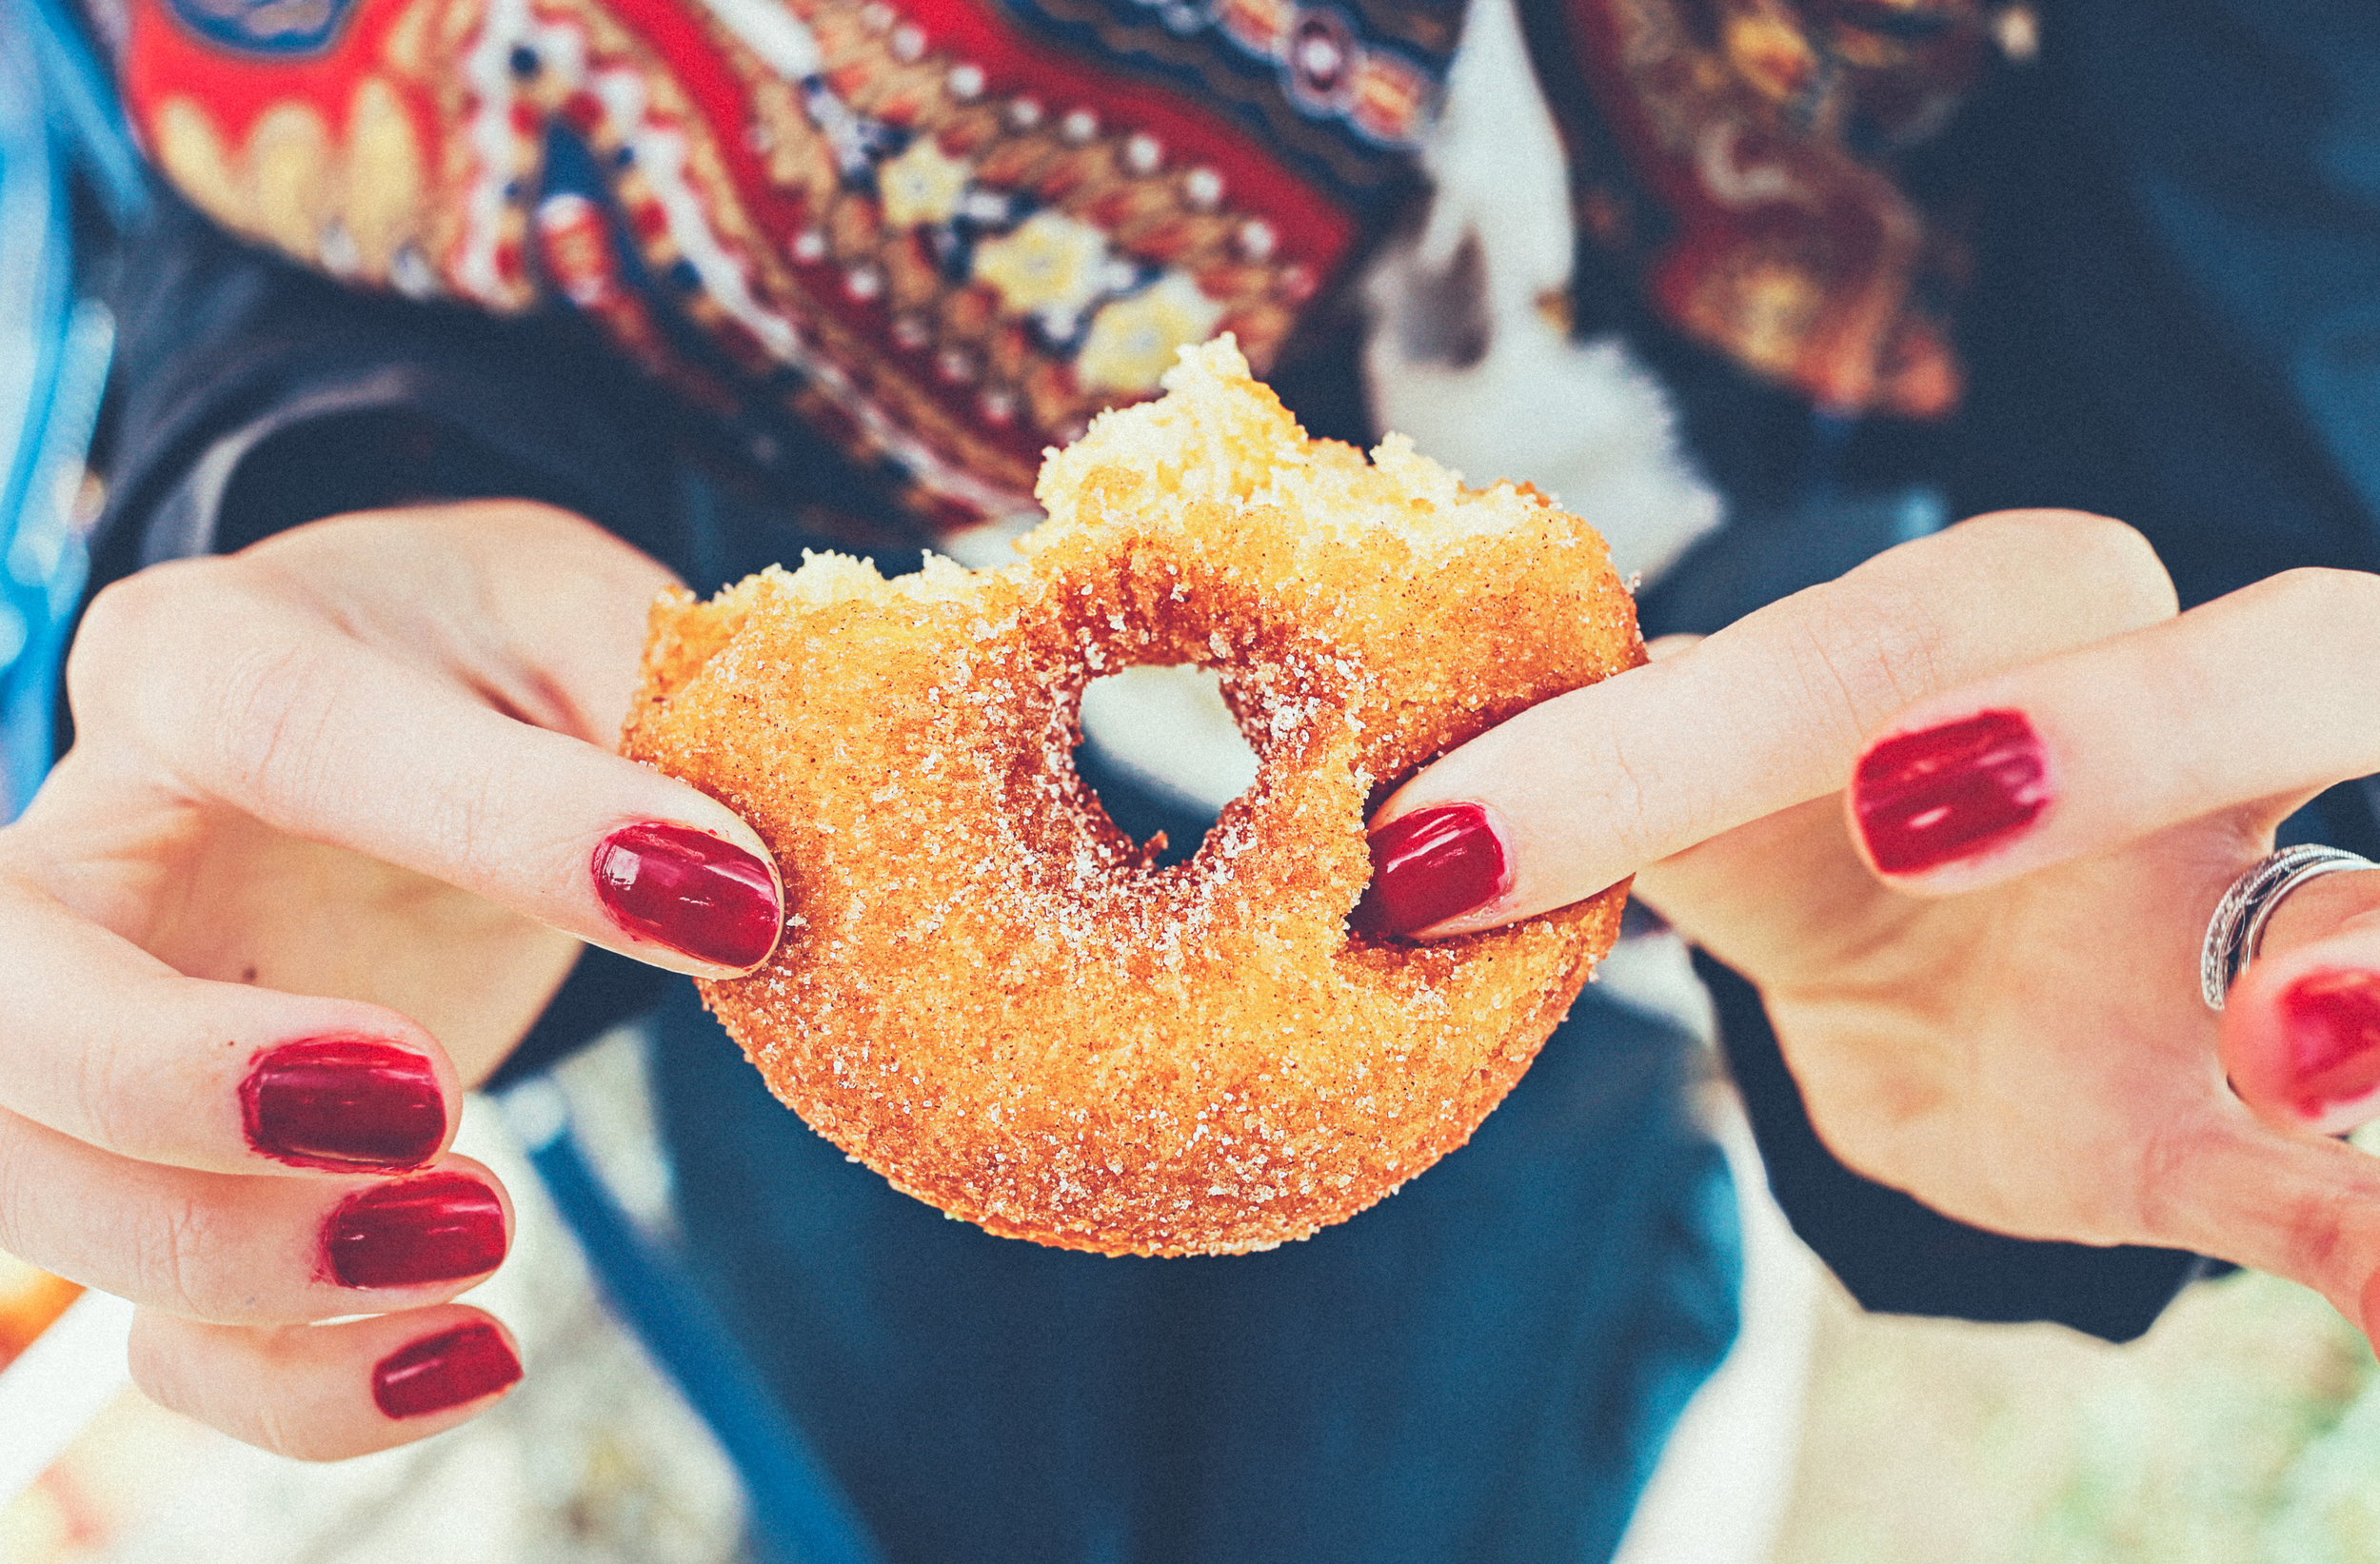 Woman with sugar donut